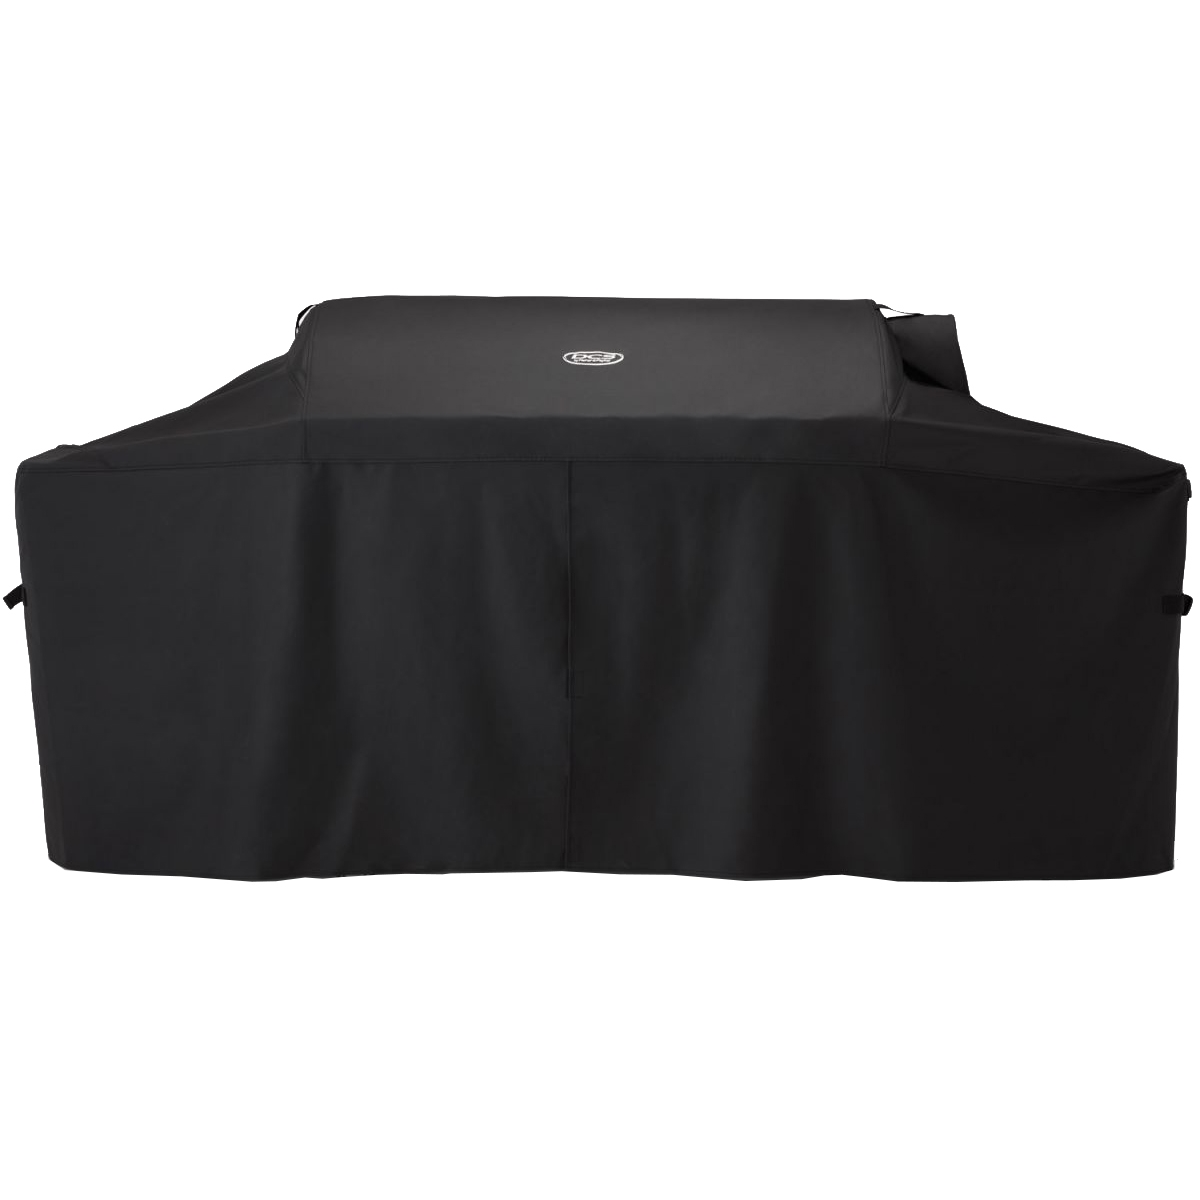 DCS Grill Cover for 30 inch Cart Mounted Grills